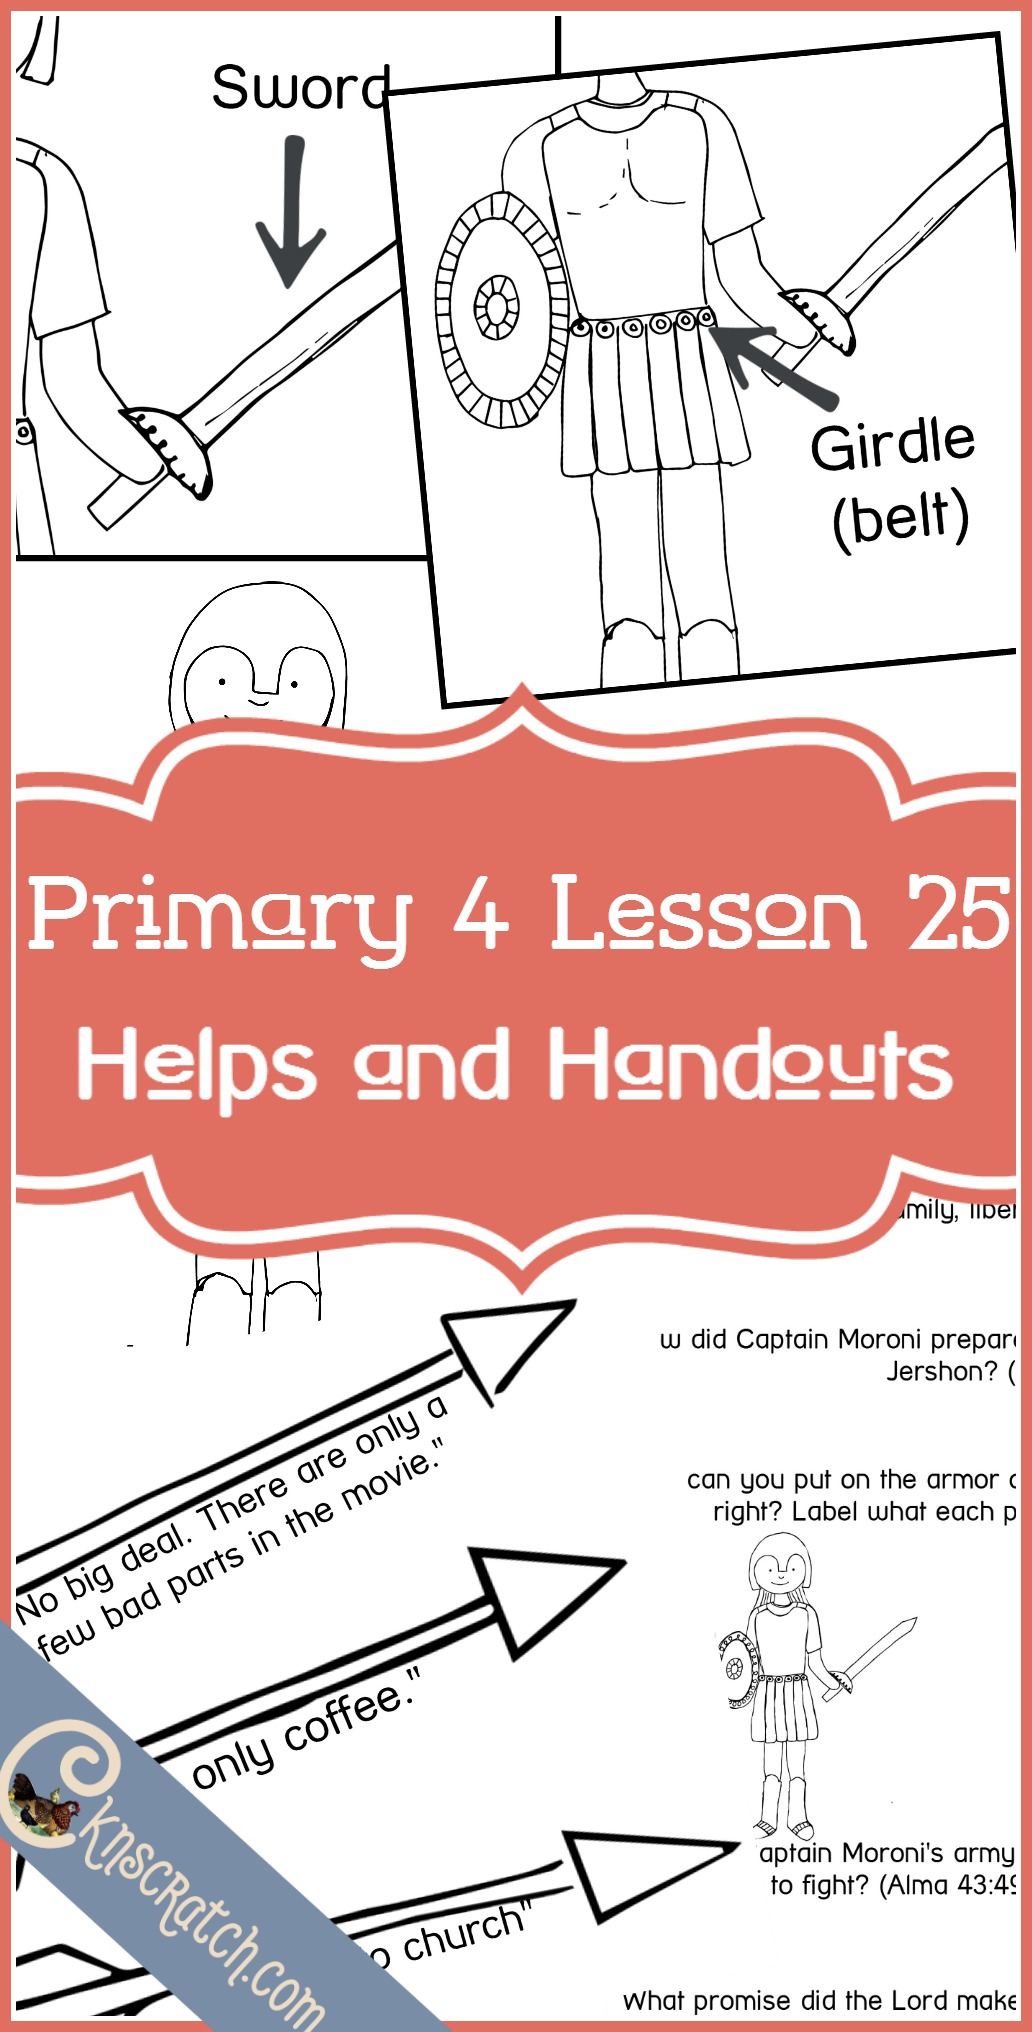 Awesome LDS lesson helps and handouts for Primary 4 Lesson 25: Captain Moroni Defeats Zerahemnah